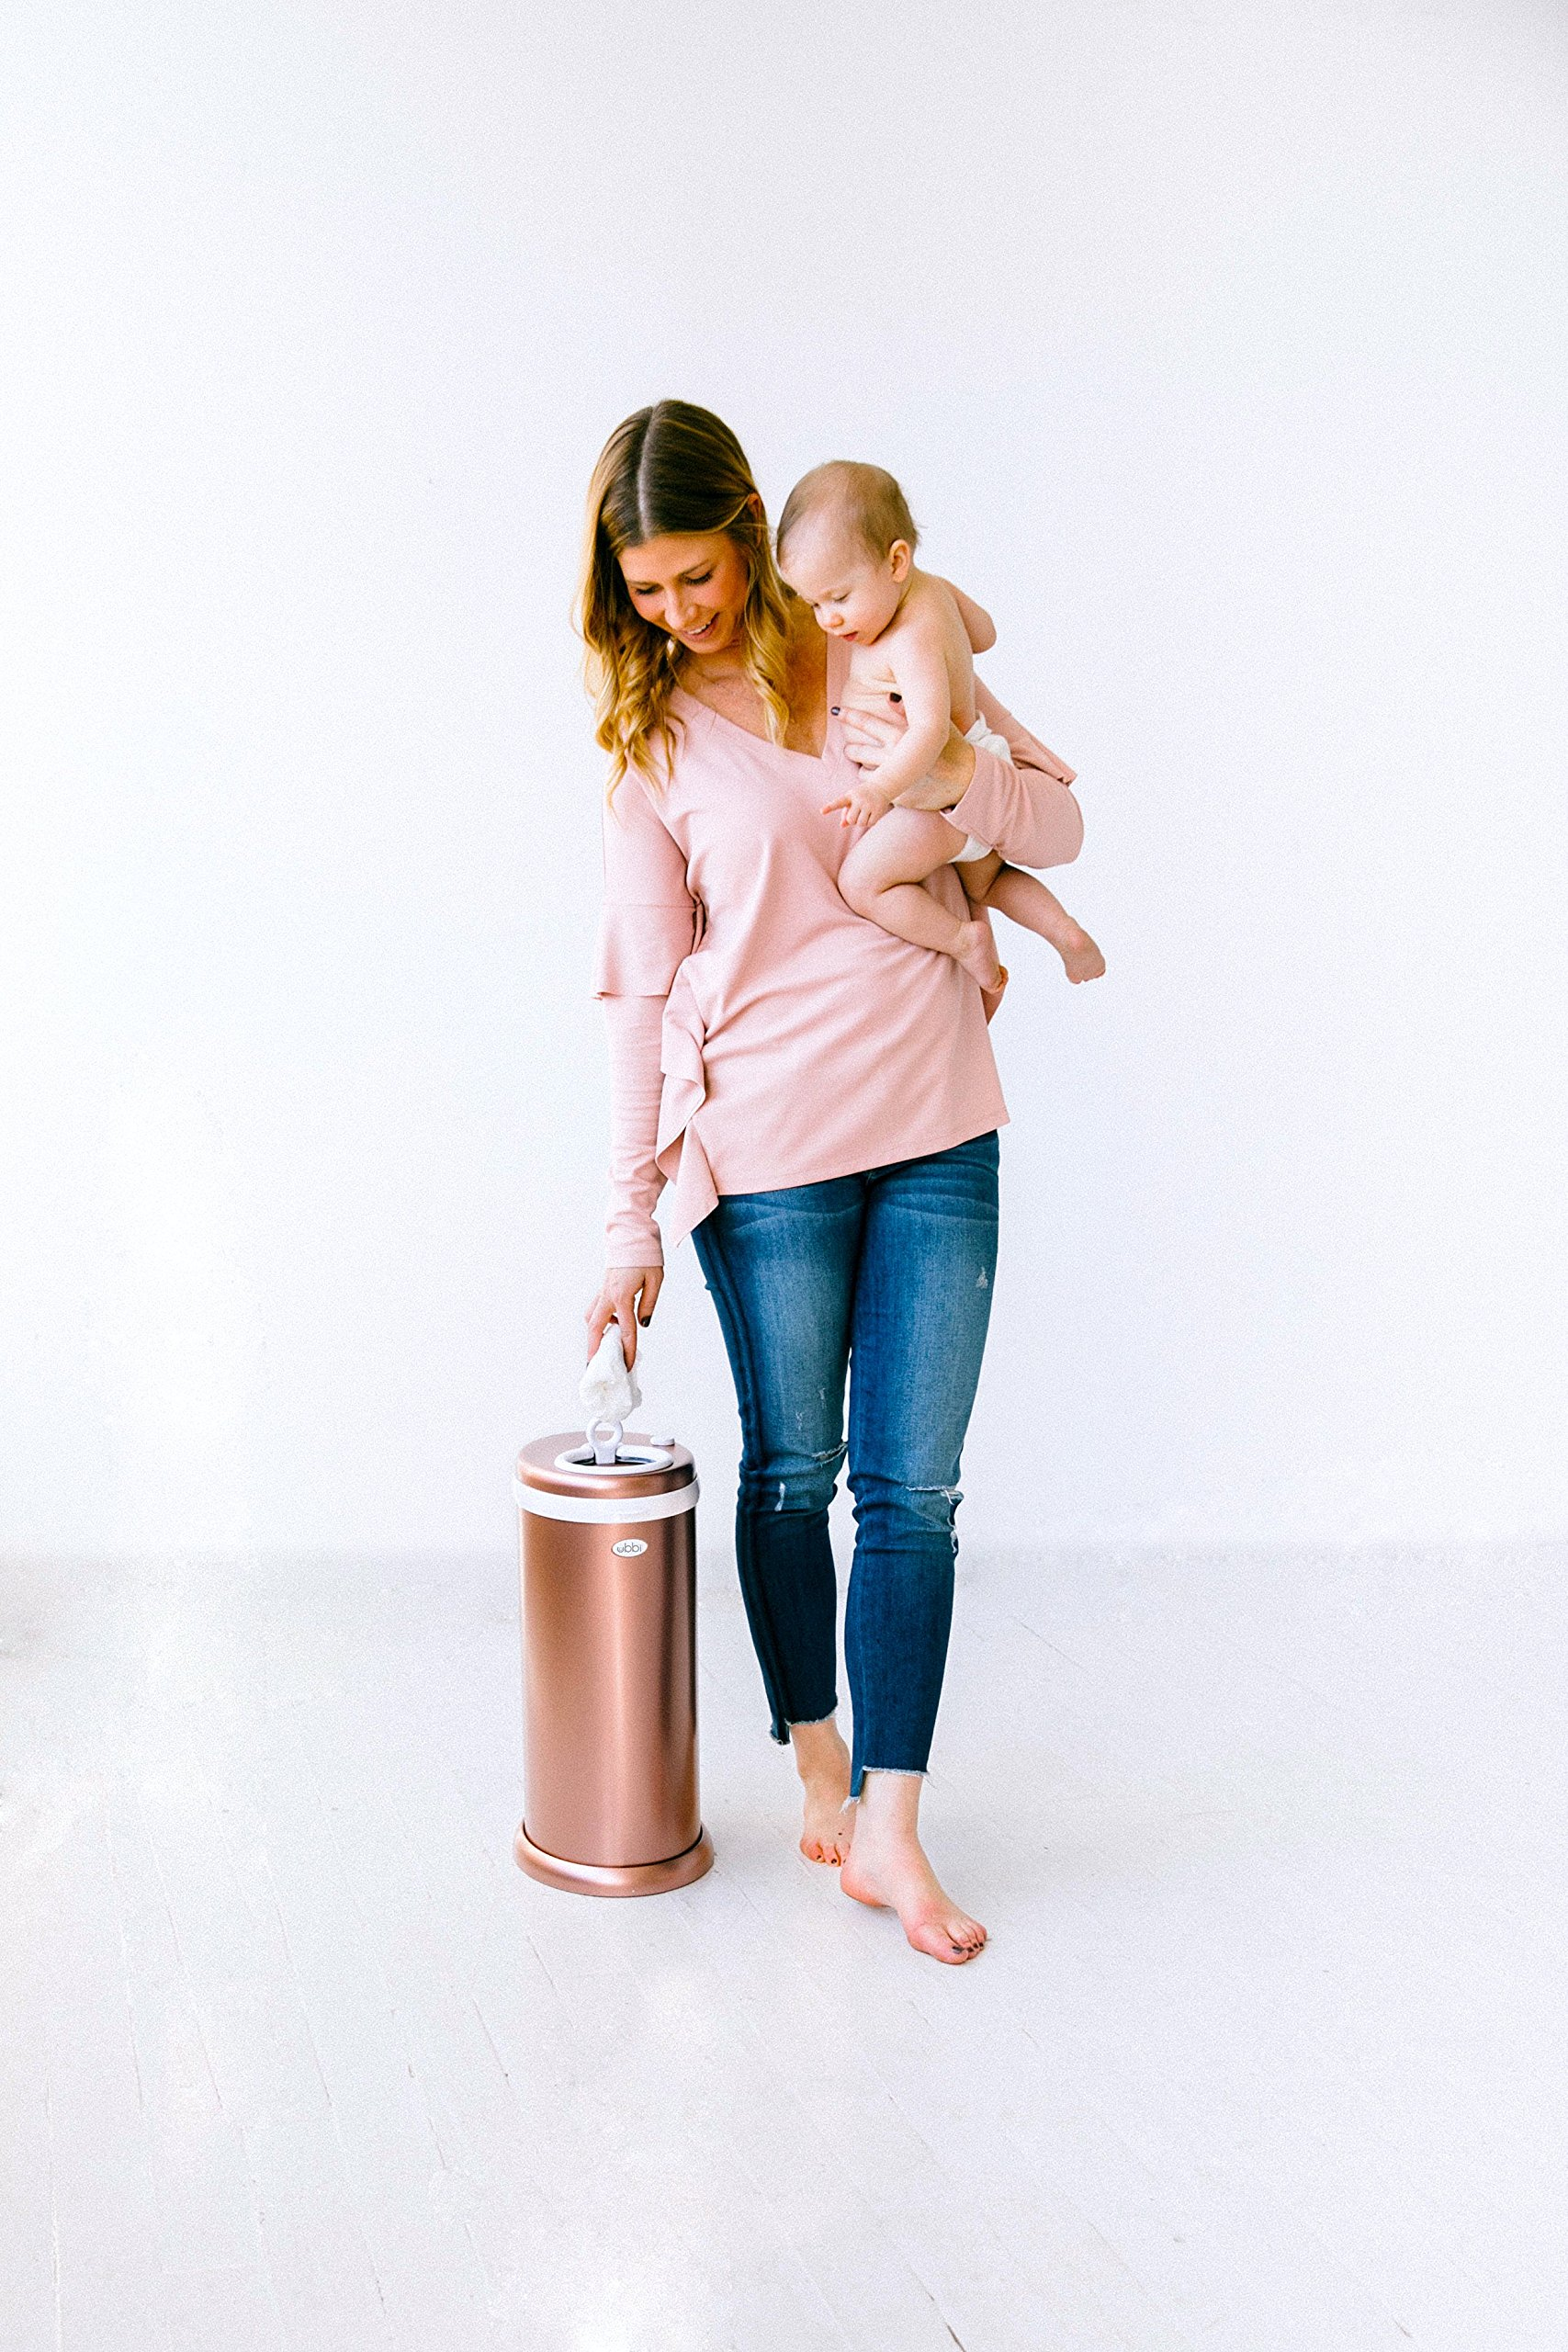 Ubbi Limited Edition, Money Saving, No Special Bag Required, Steel Odor Locking Diaper Pail, Rose Gold by Ubbi (Image #6)